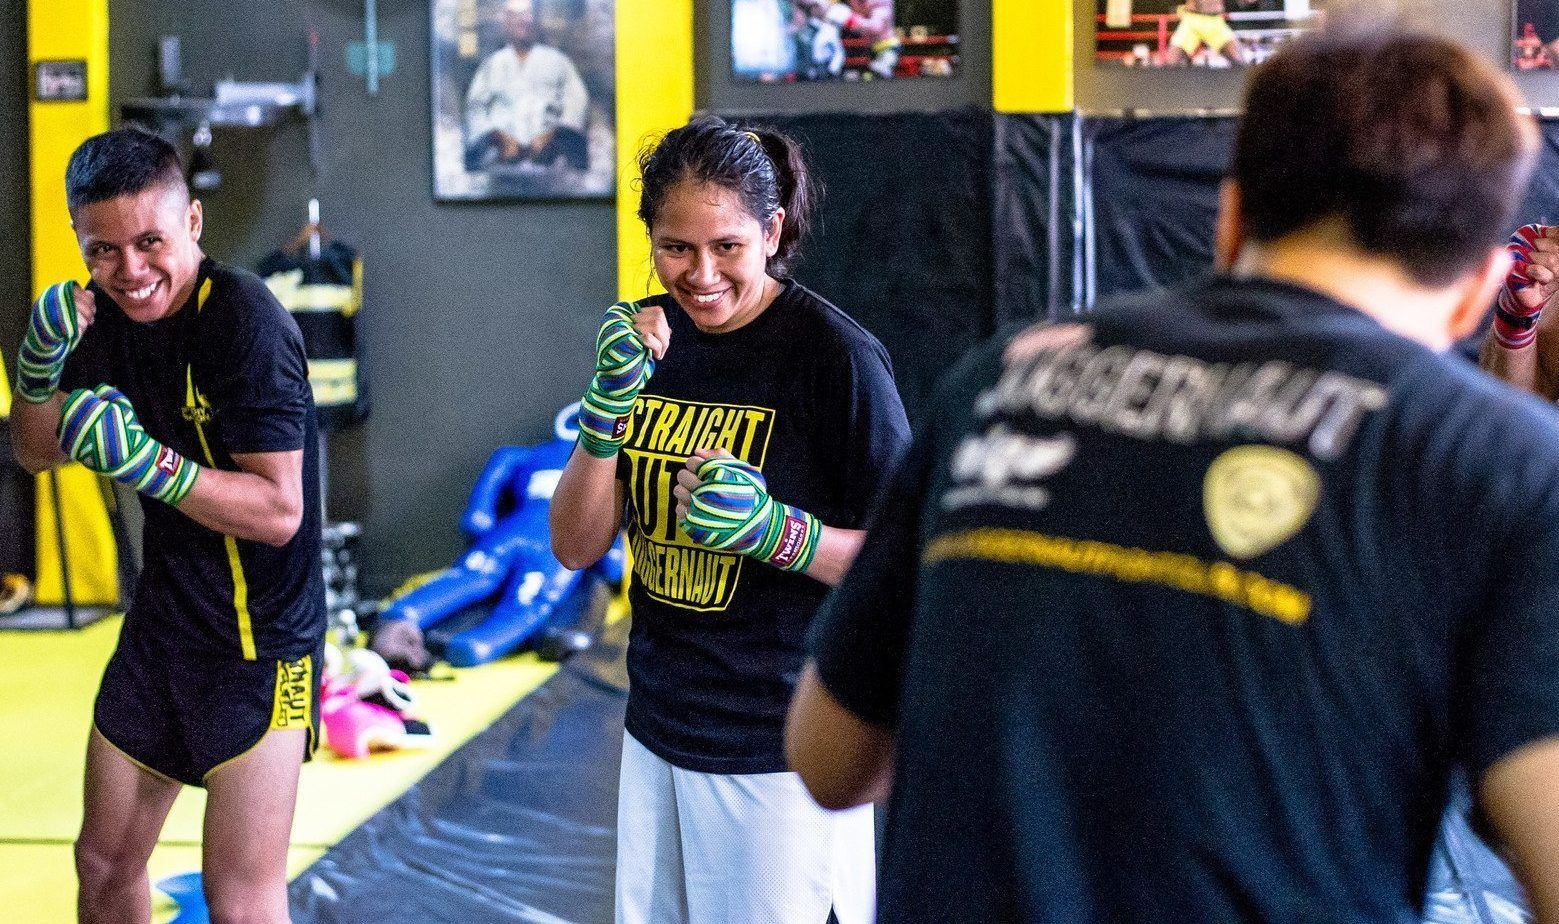 A person smiles while training Muay Thai at the old Juggernaut Fight Club